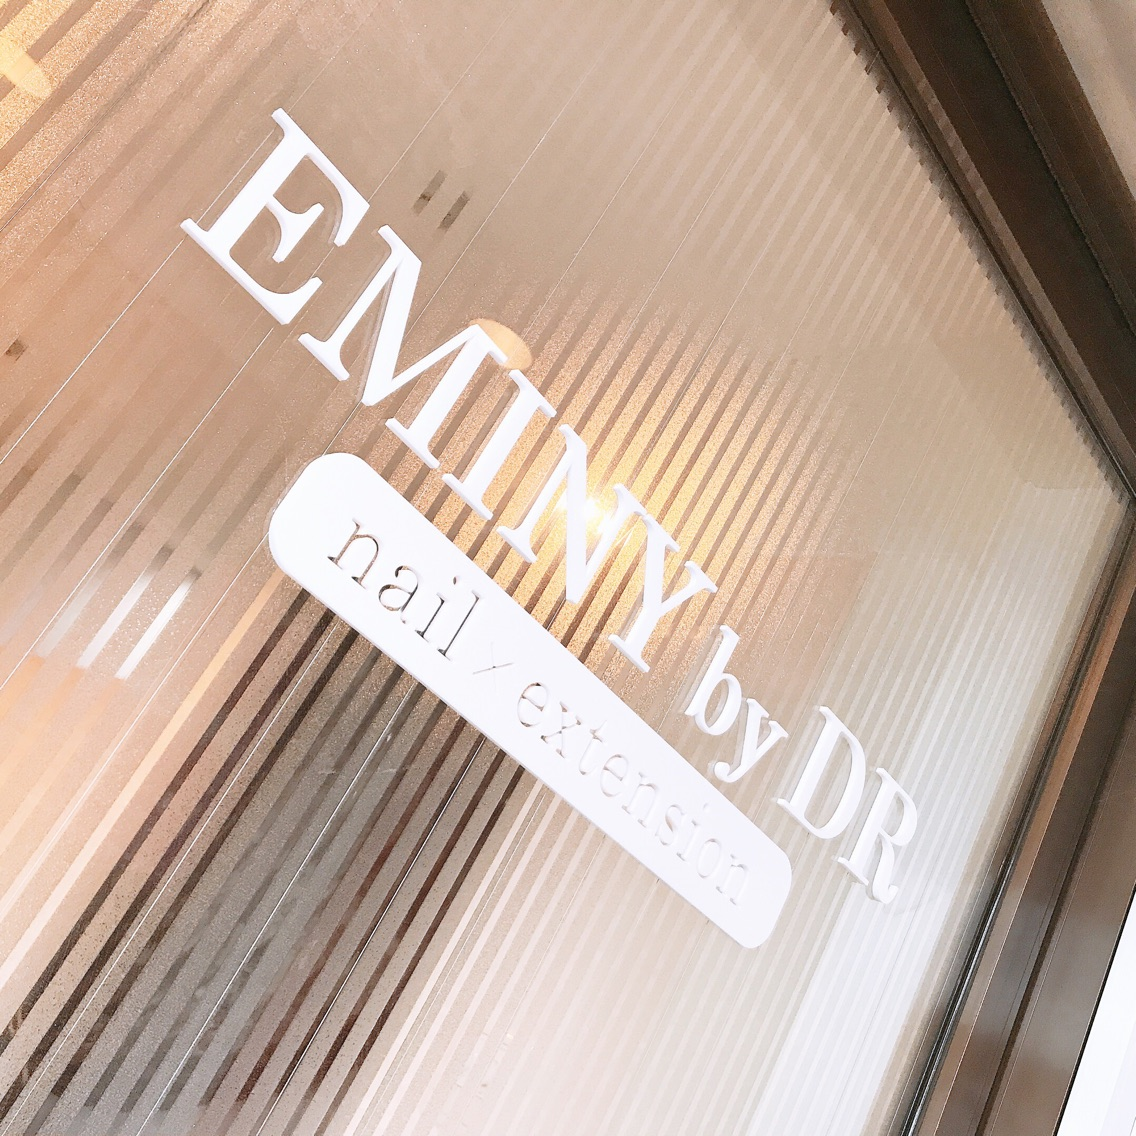 EMINY by DR